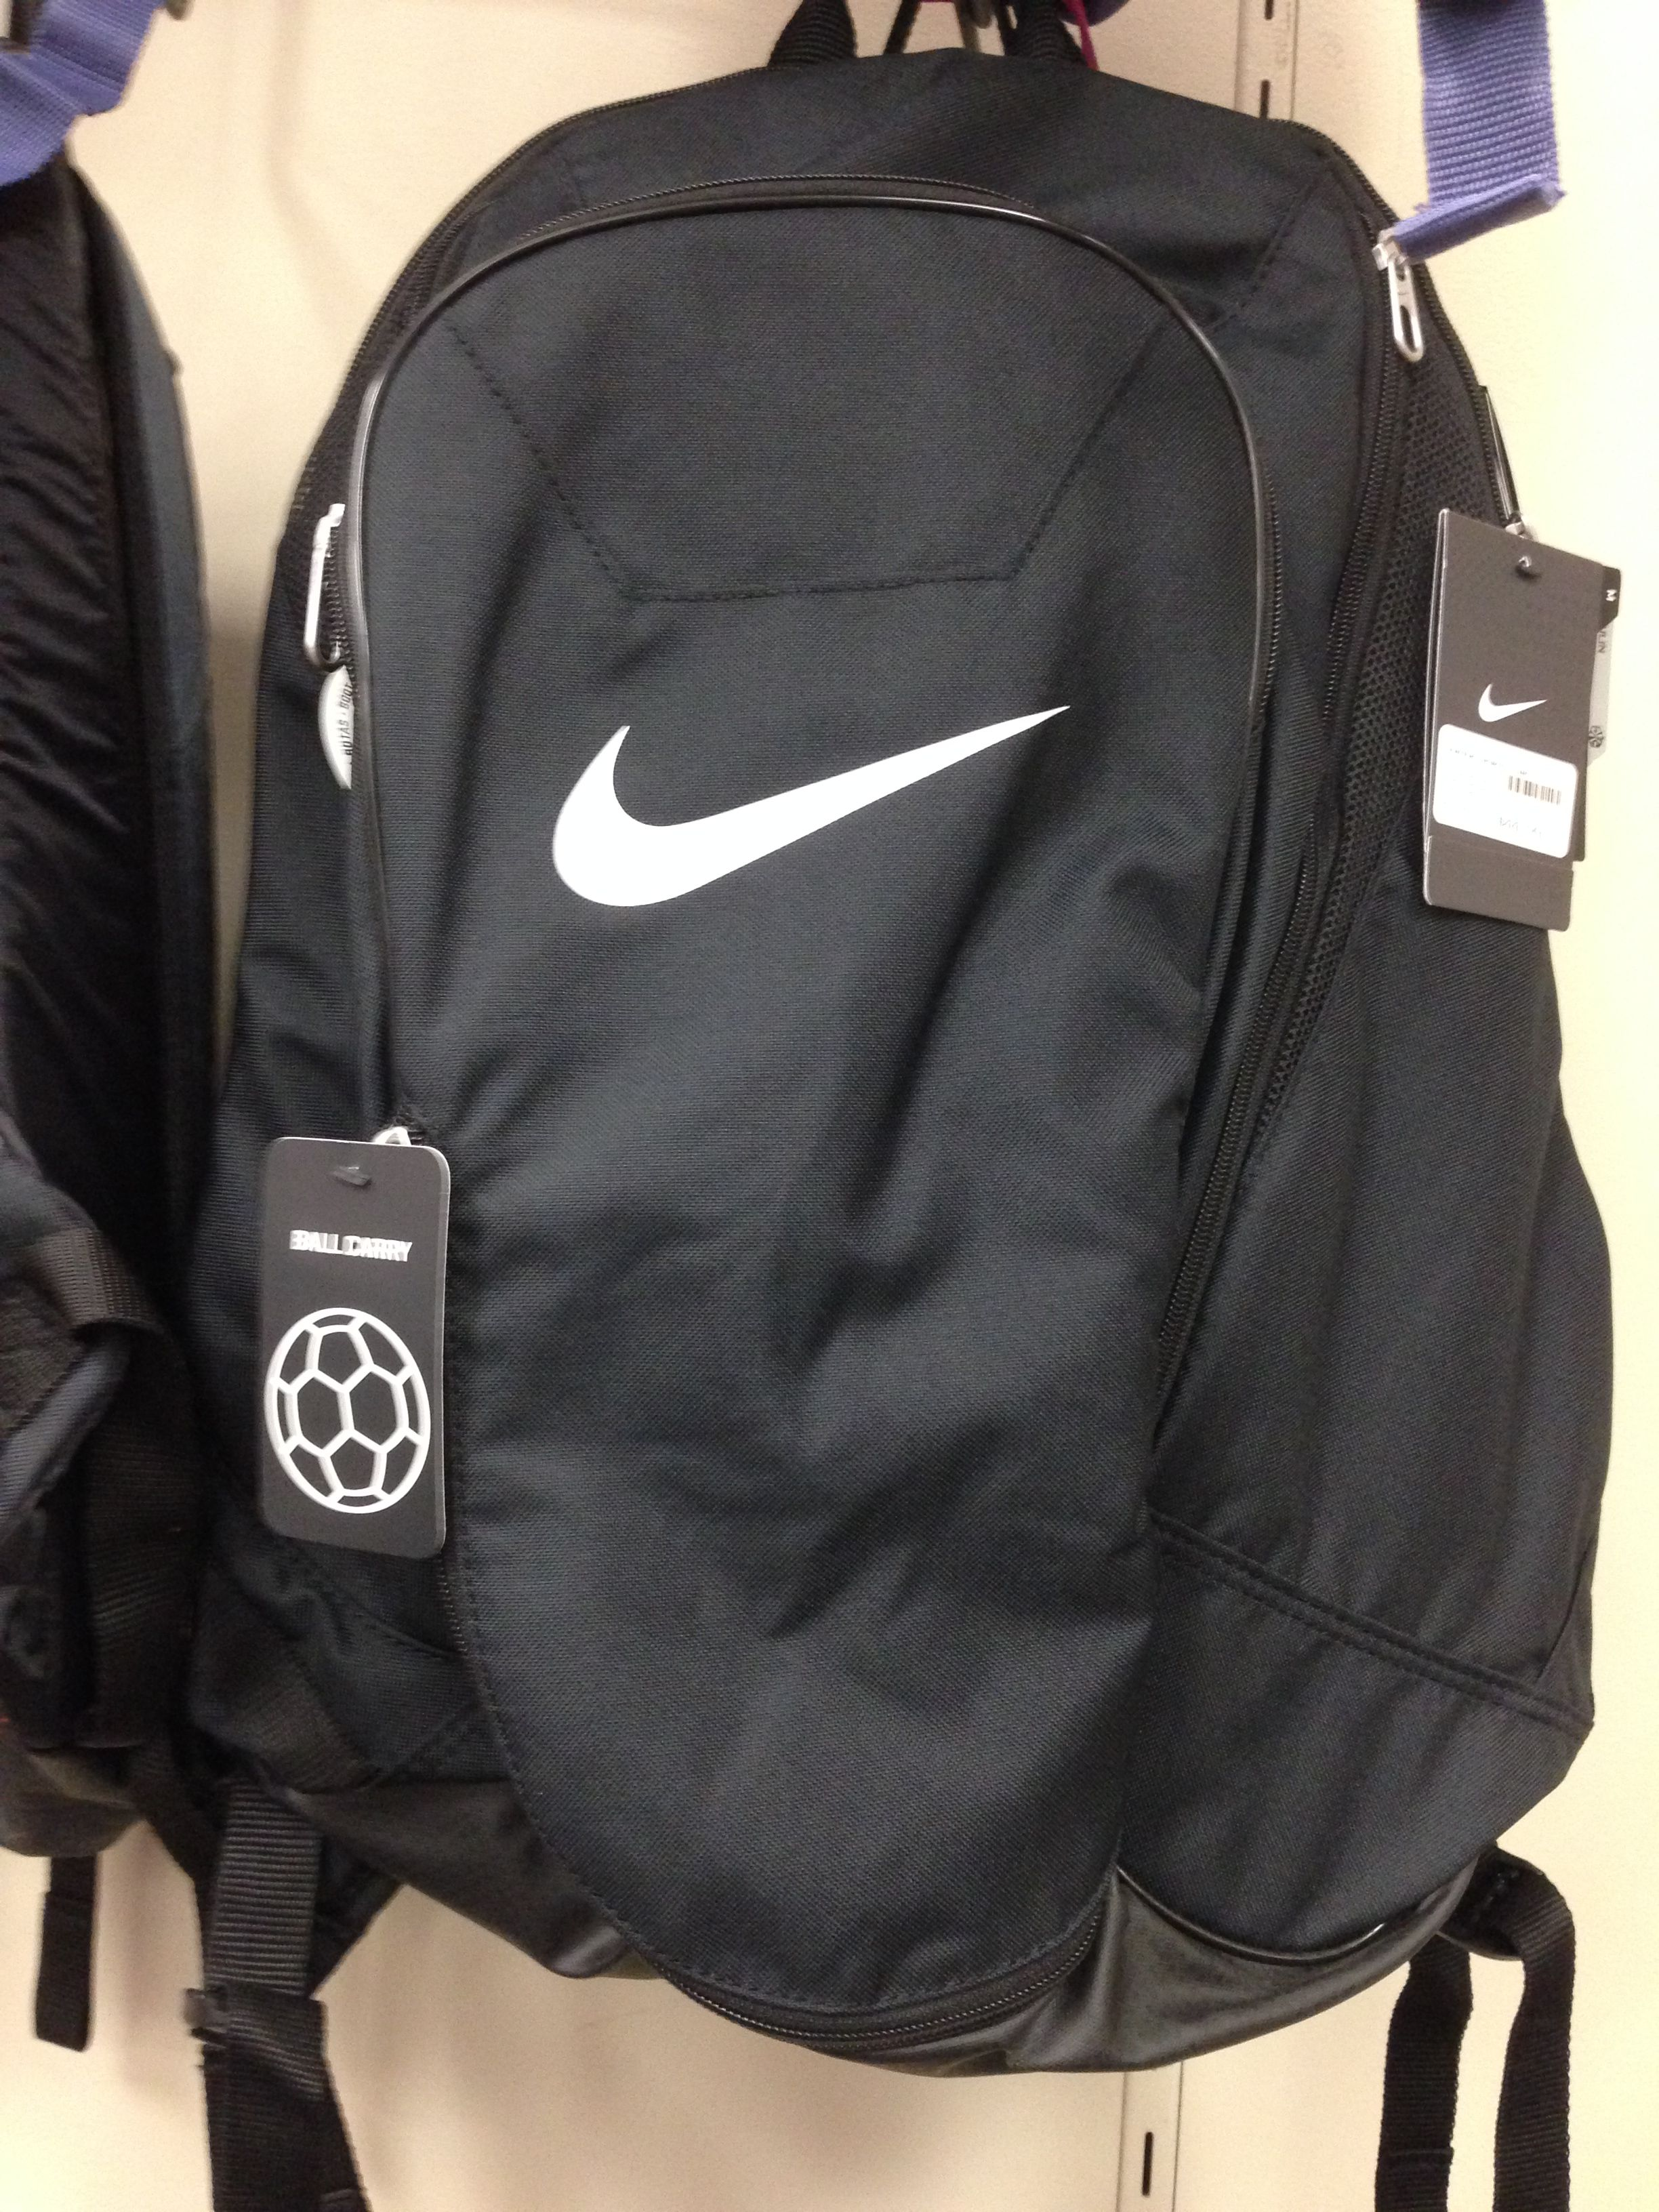 Black Nike Soccer Backpack With Ball Carry Compartment